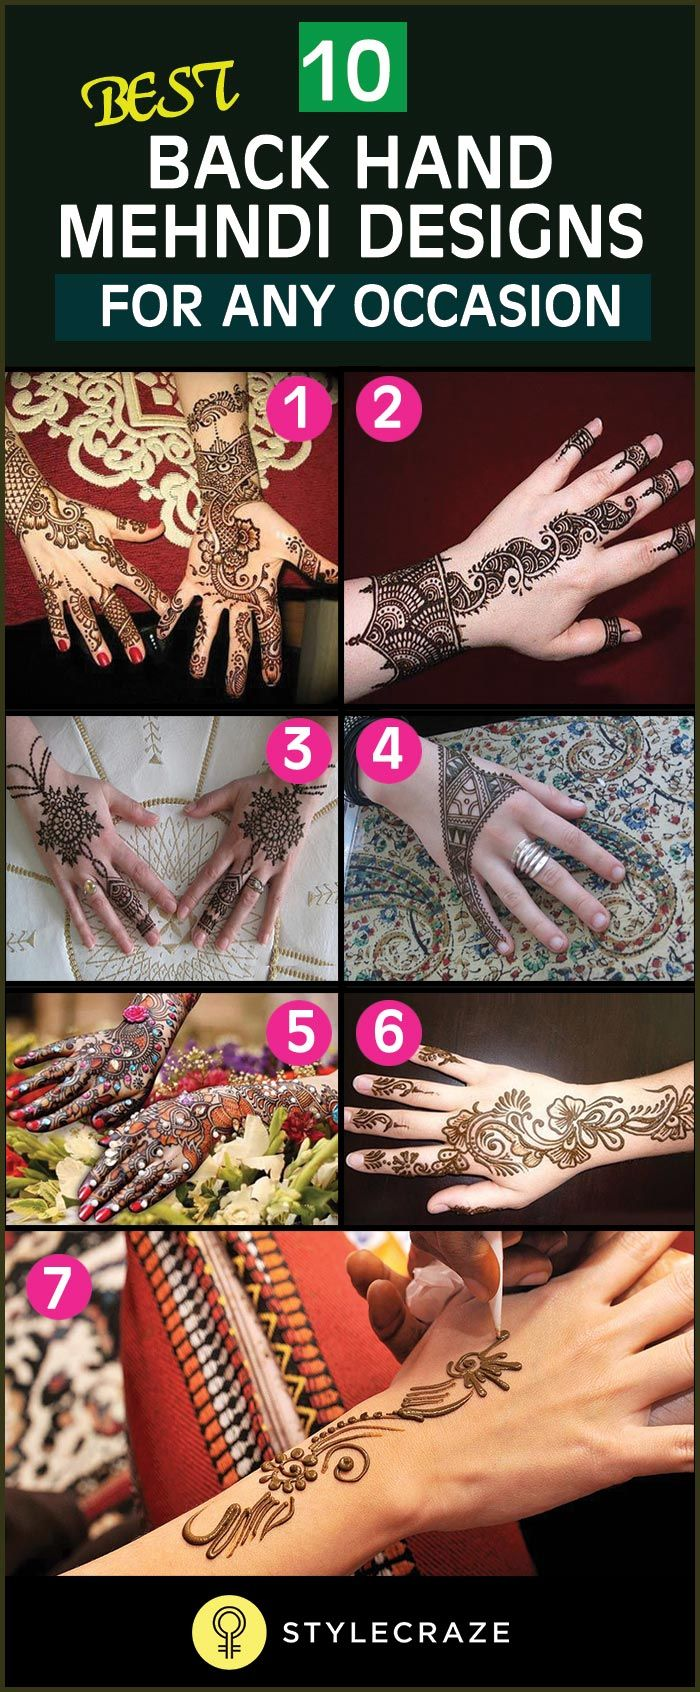 Pin mehndi and bangles display pics awesome dp wallpaper on pinterest - 10 Best Back Hand Mehndi Designs For Any Occasion